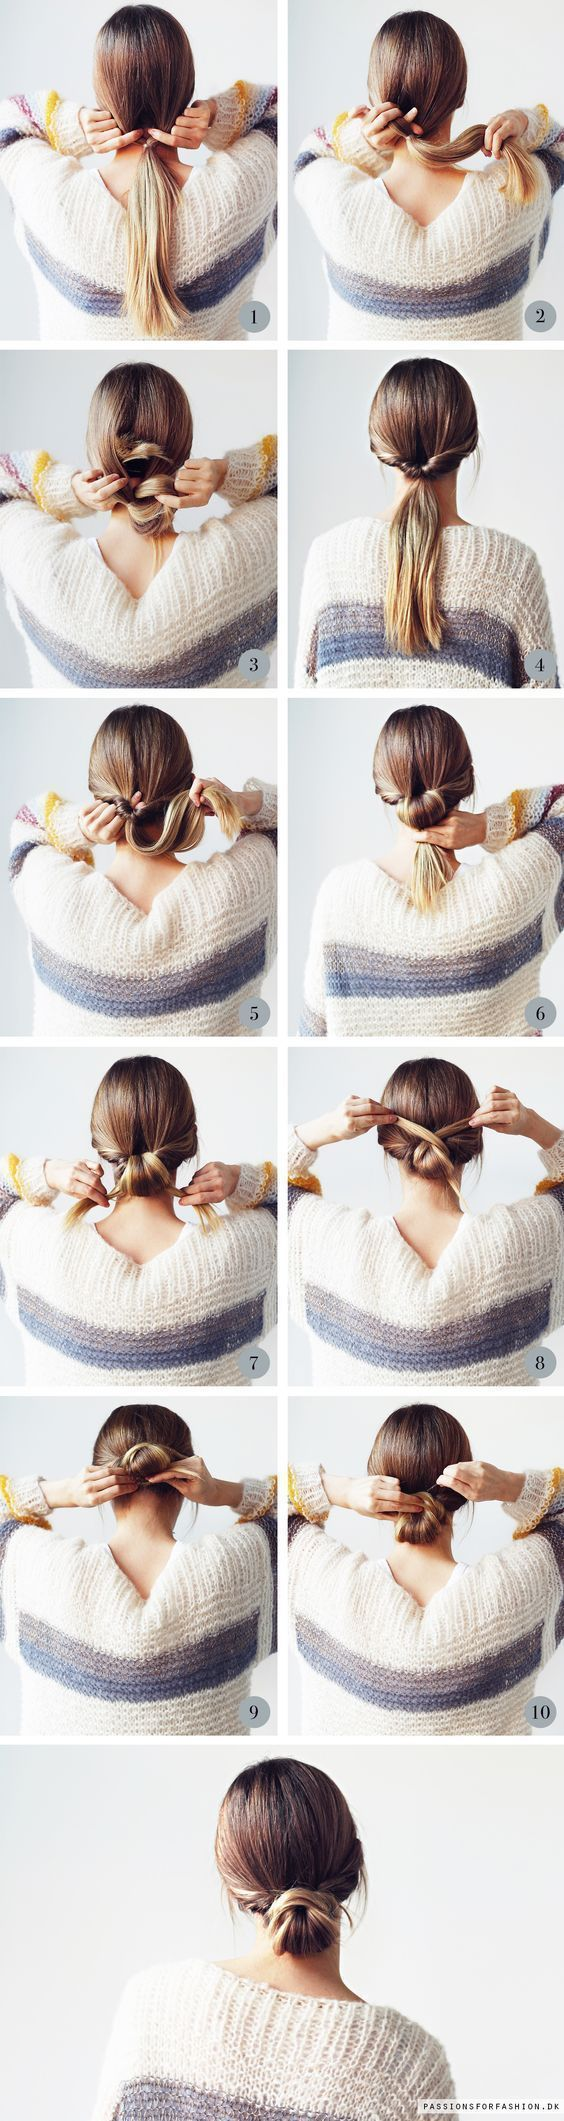 Low messy bun stepbystep super easy hair tutorial on how to